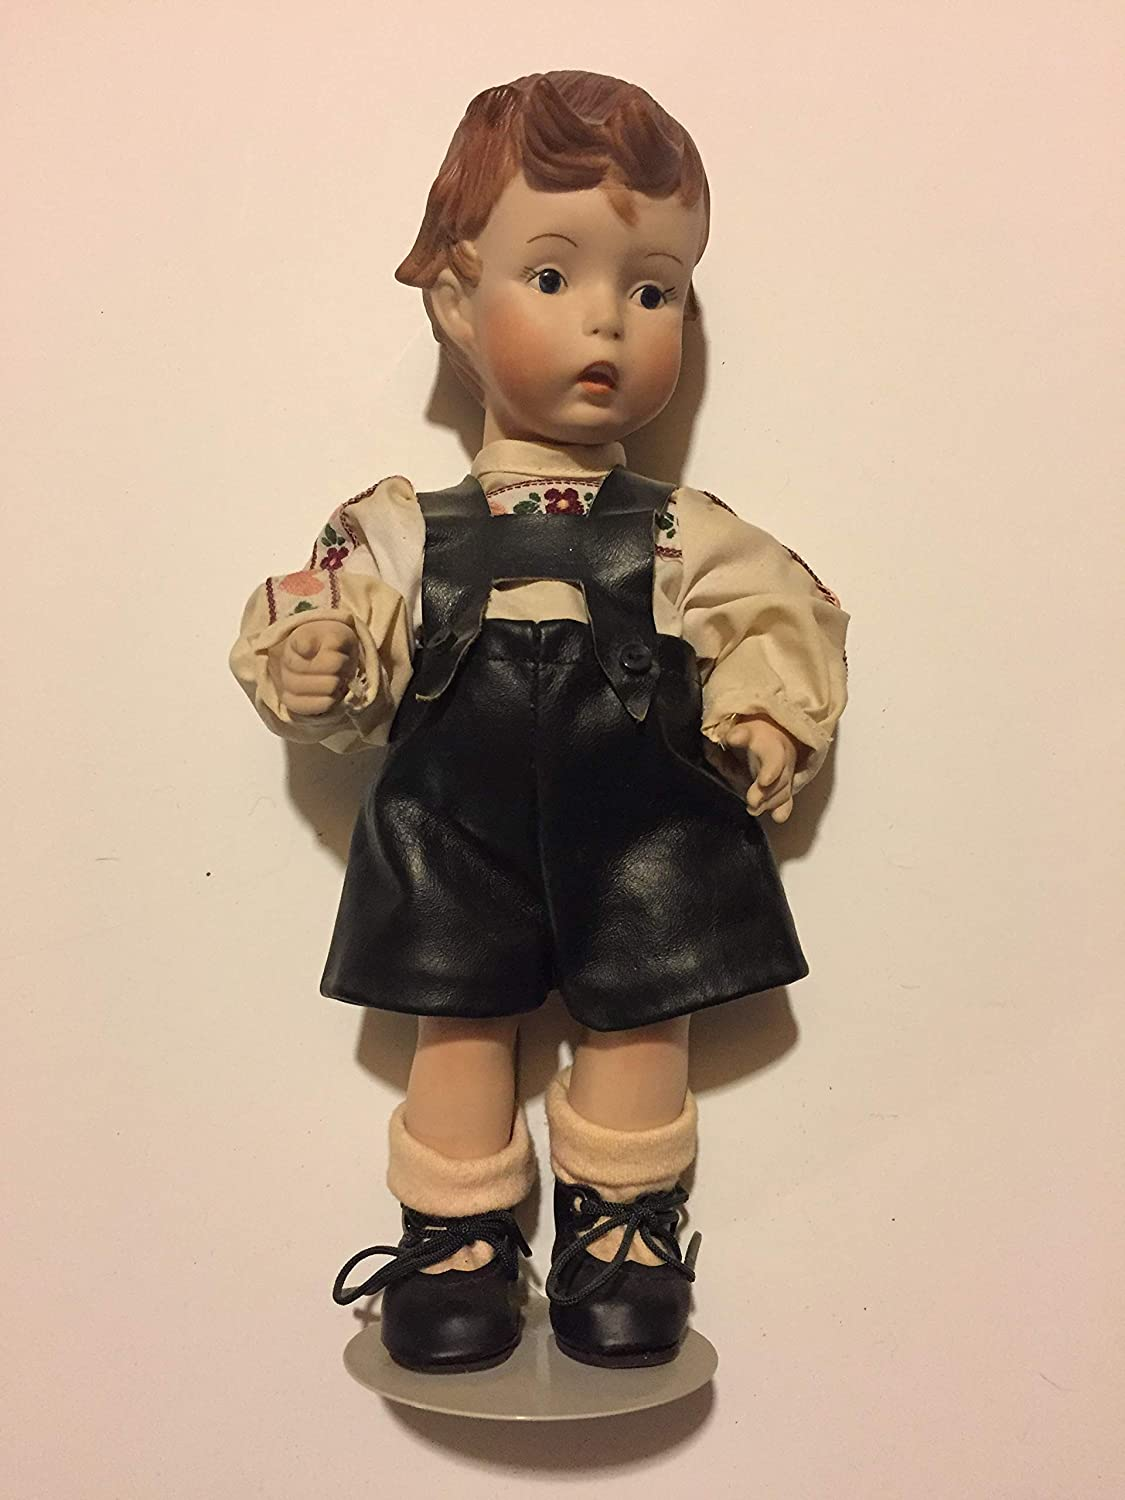 Ceramic Boy Doll